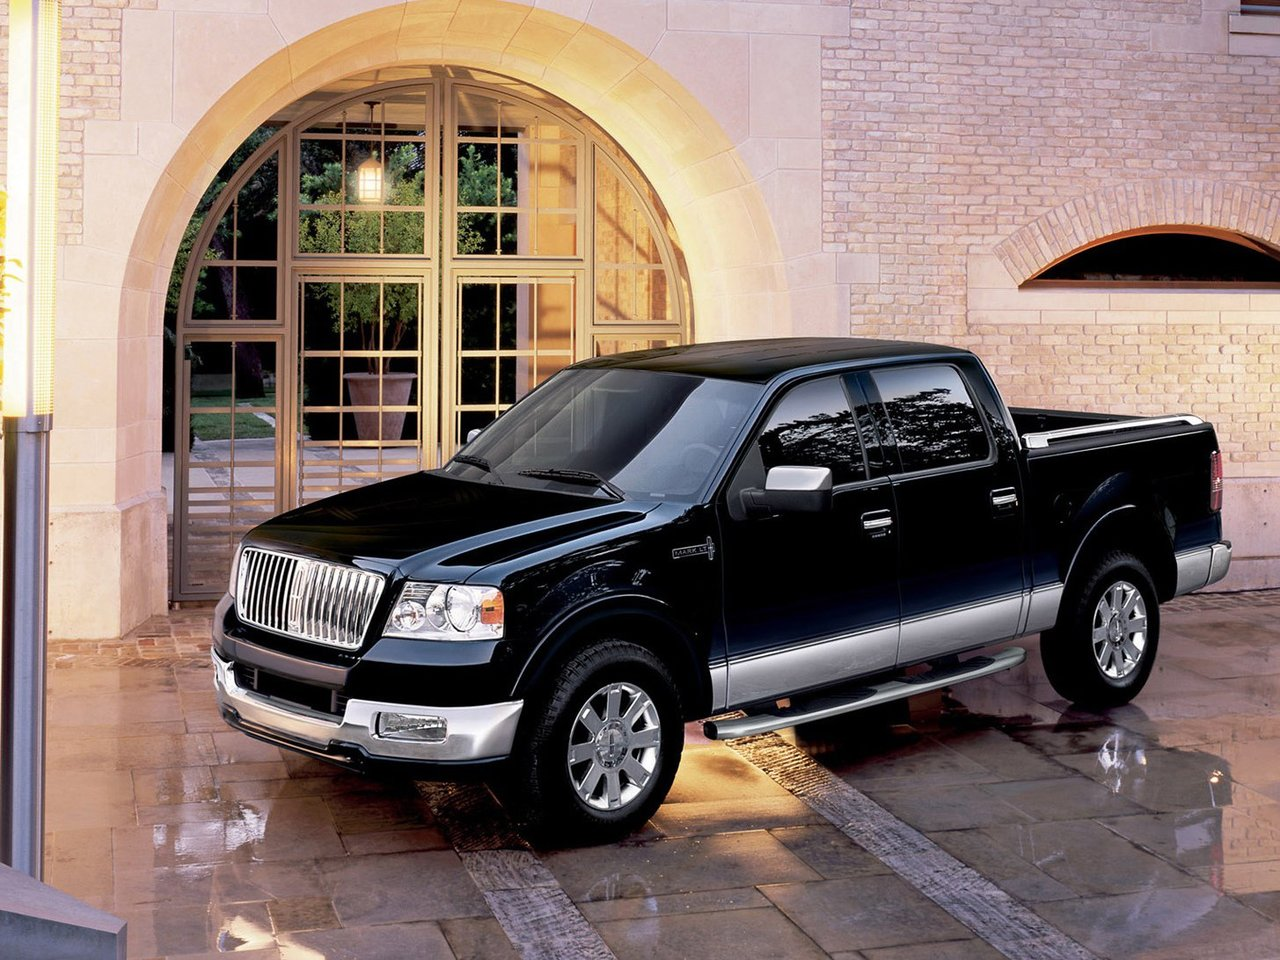 Автомобиль Lincoln Mark LT